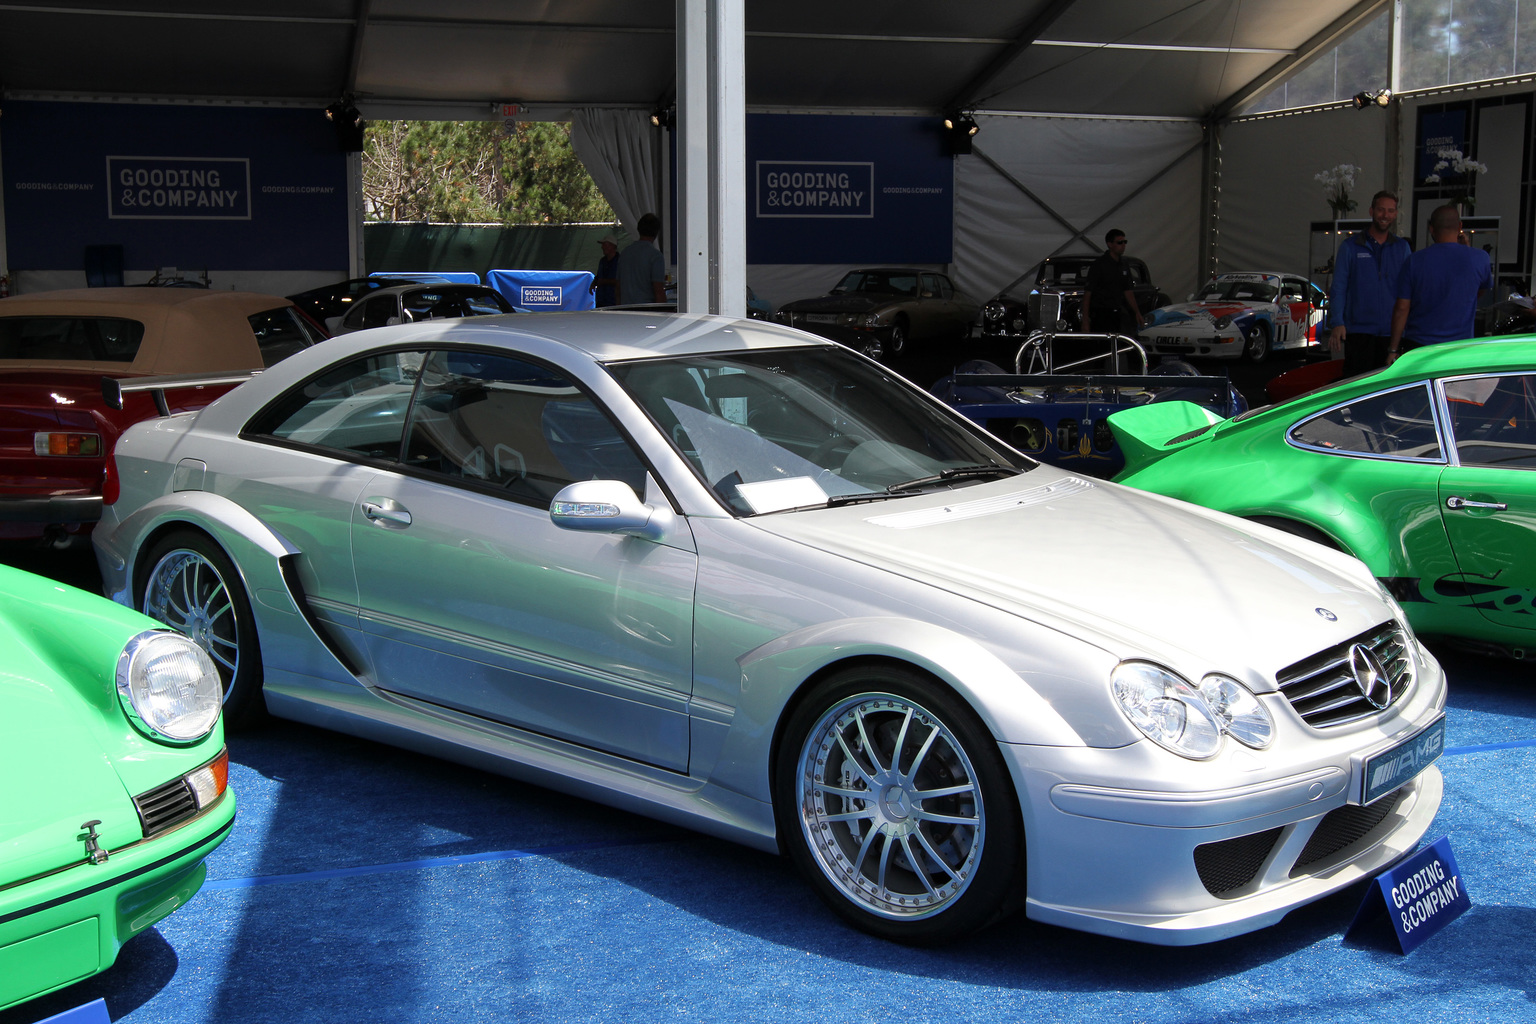 2004 mercedes benz clk dtm amg gallery gallery for Mercedes benz clk dtm